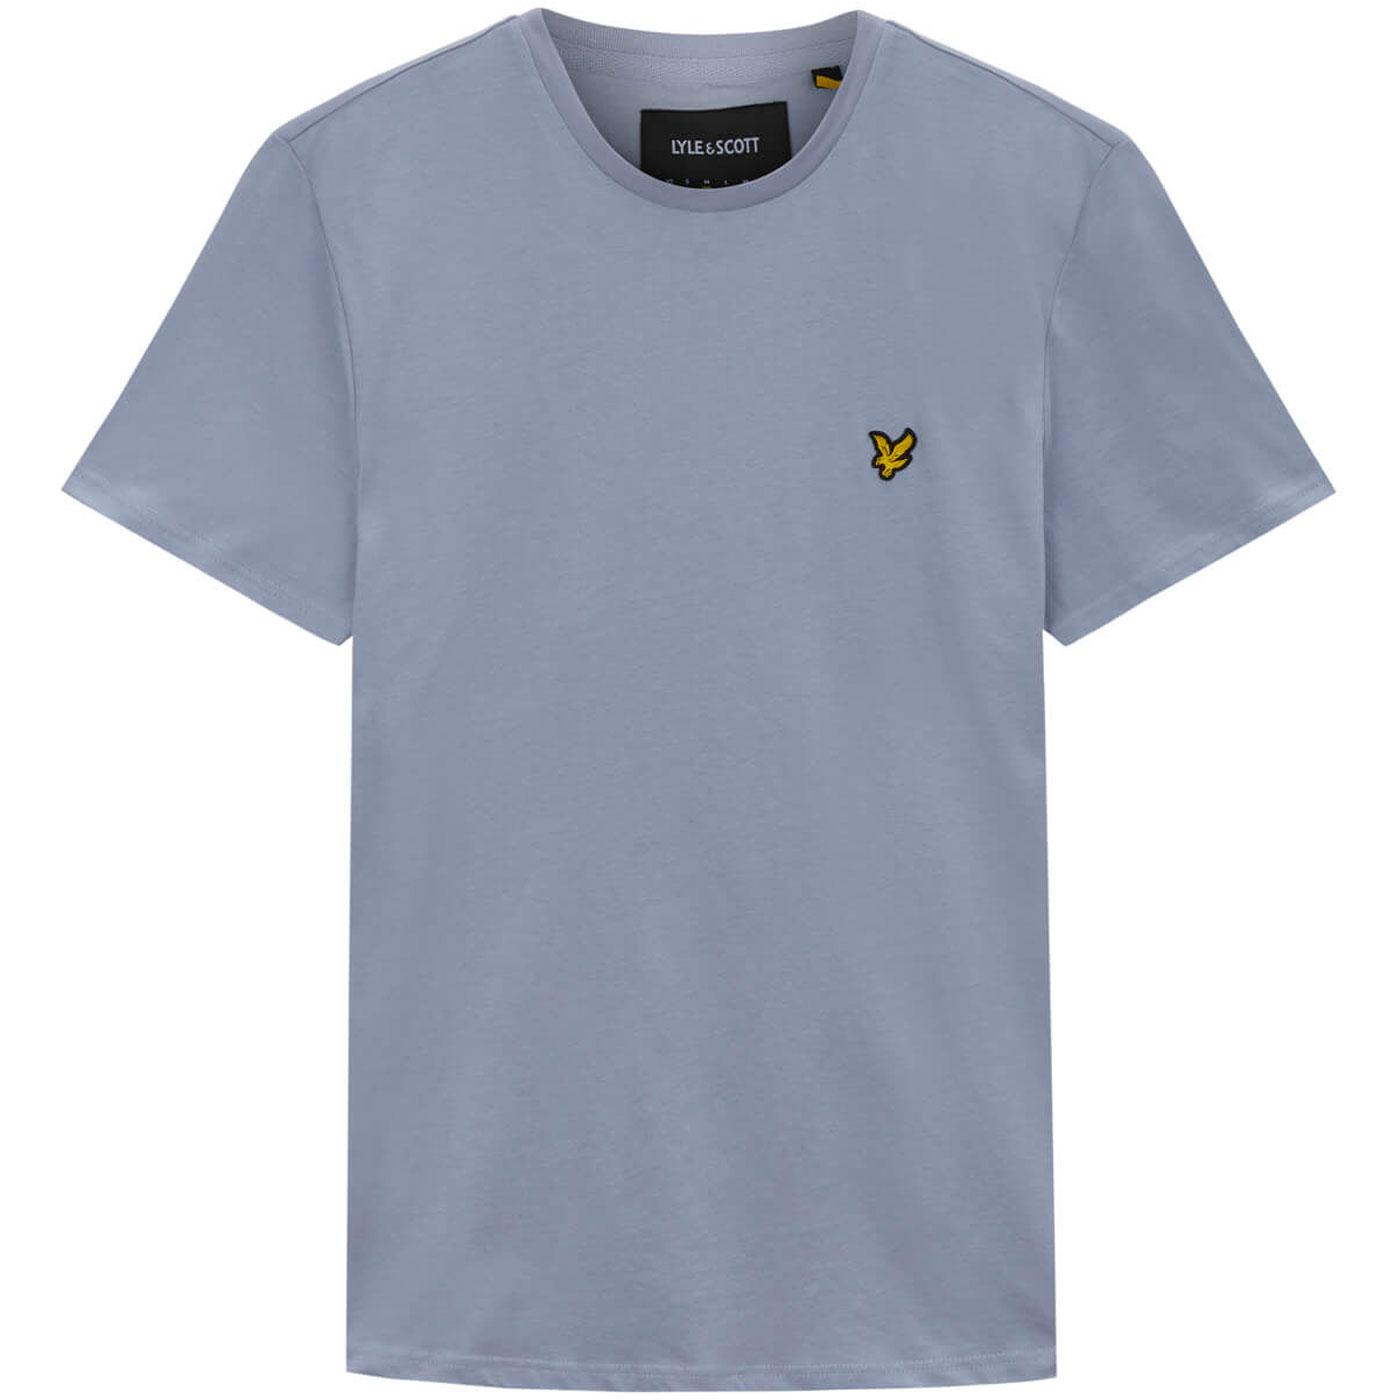 LYLE & SCOTT Men's Retro Crew Neck Tee CLOUD BLUE